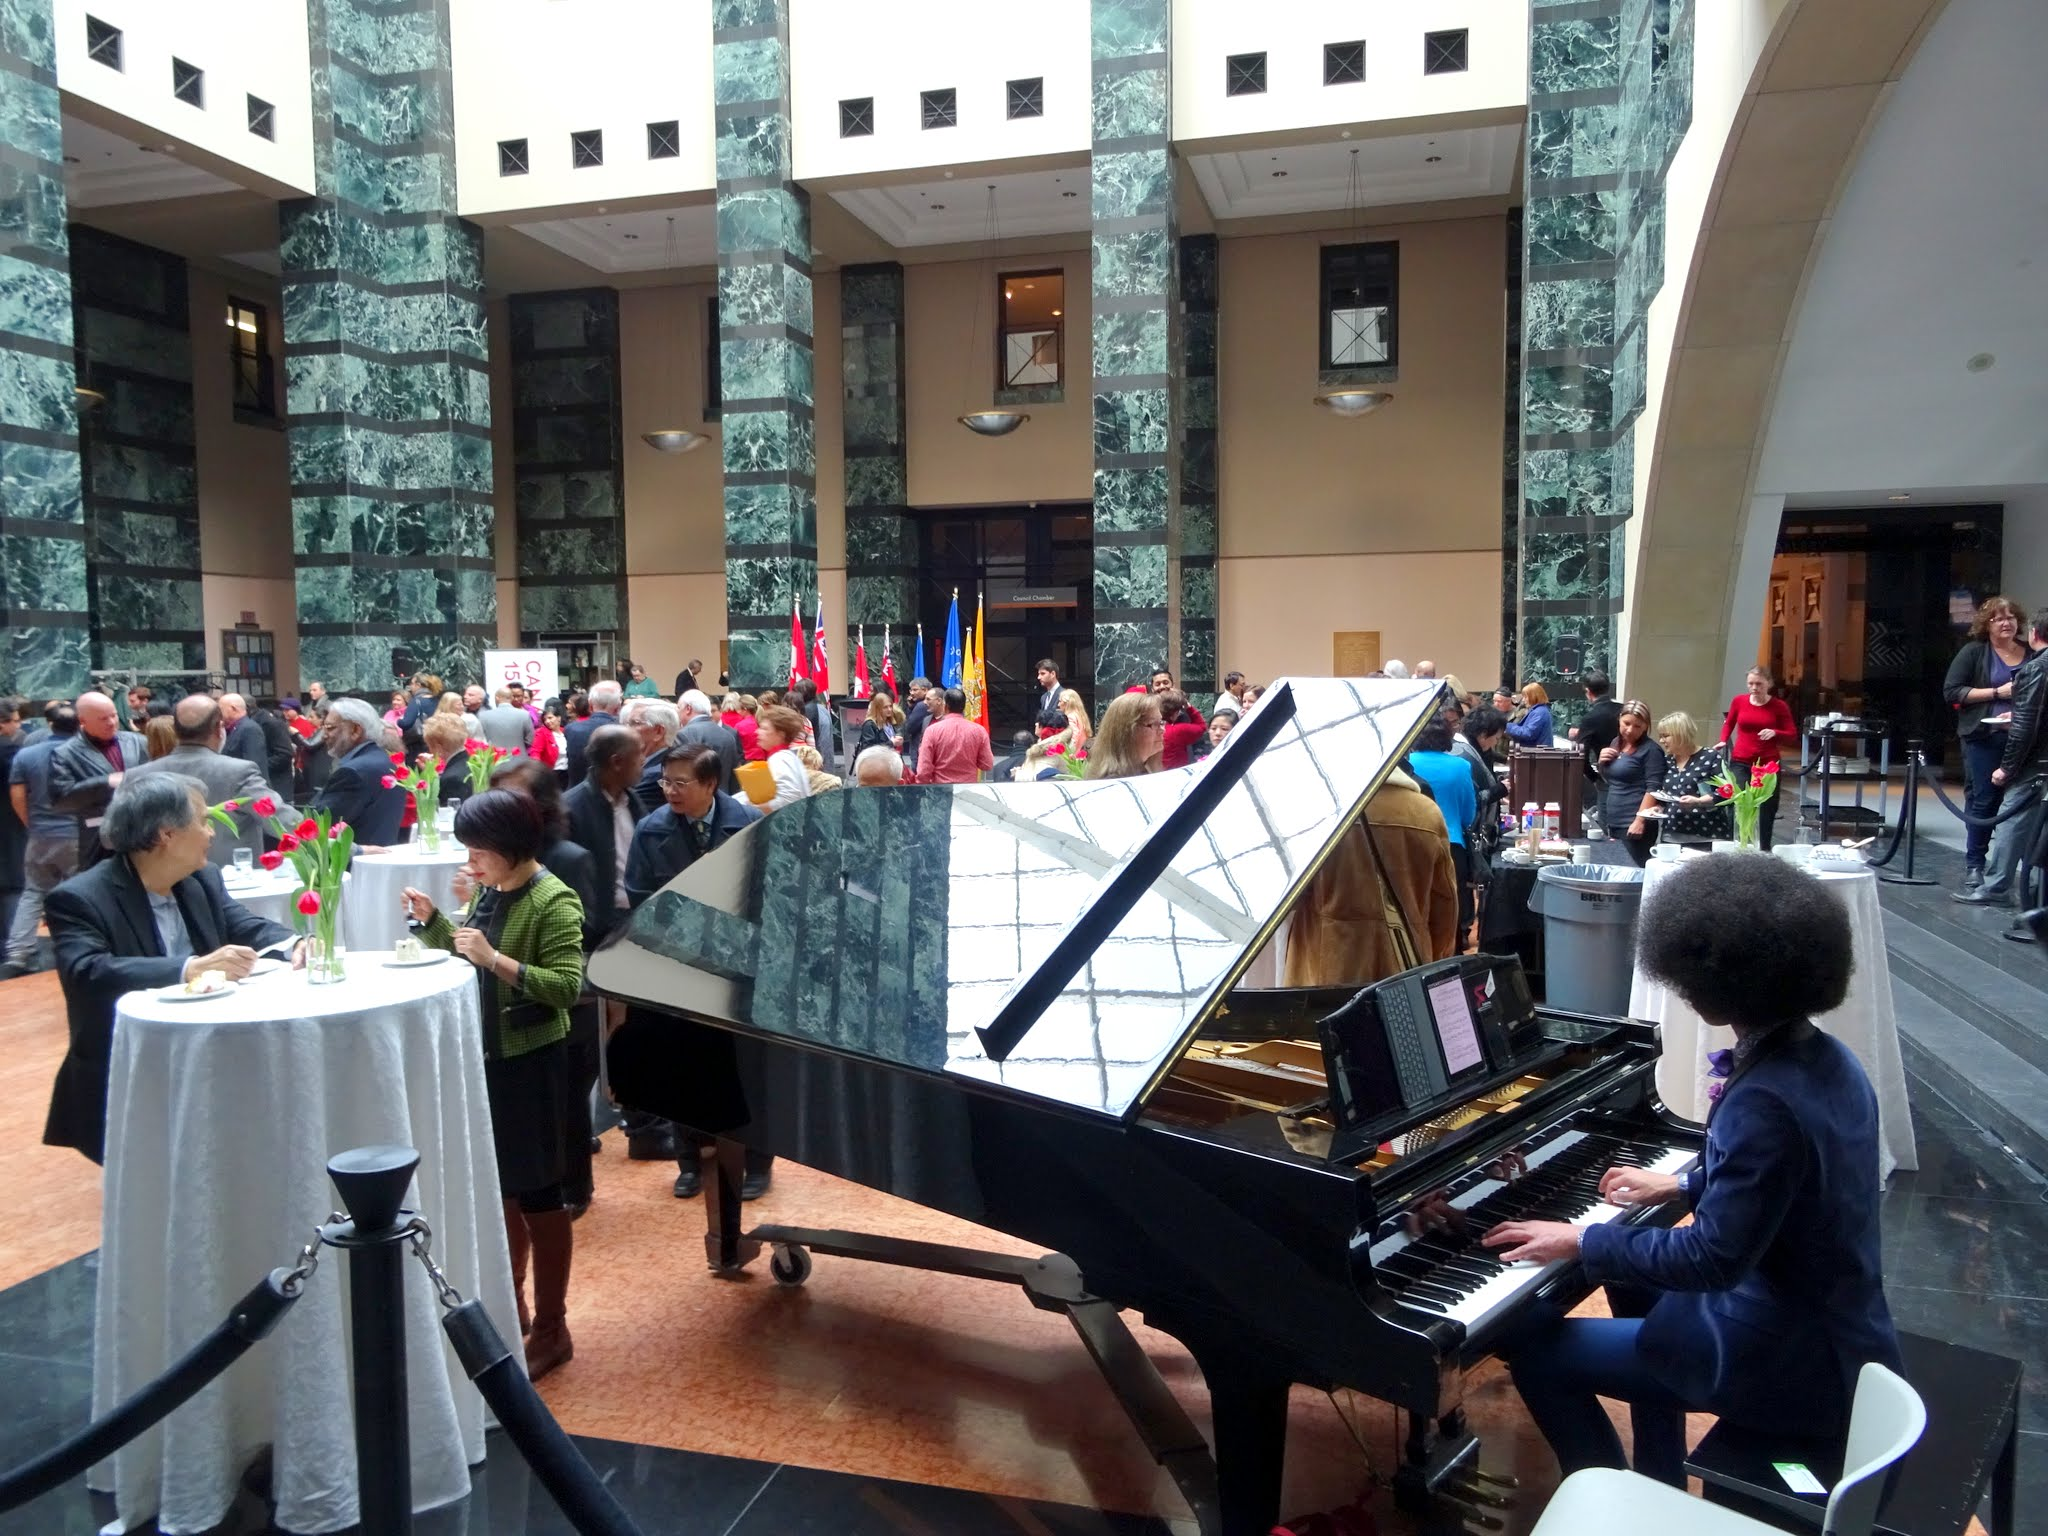 William Leathers pianist at Hazel McCallion Day Event, Mississauga Civic Centre, 14 Feb 2017